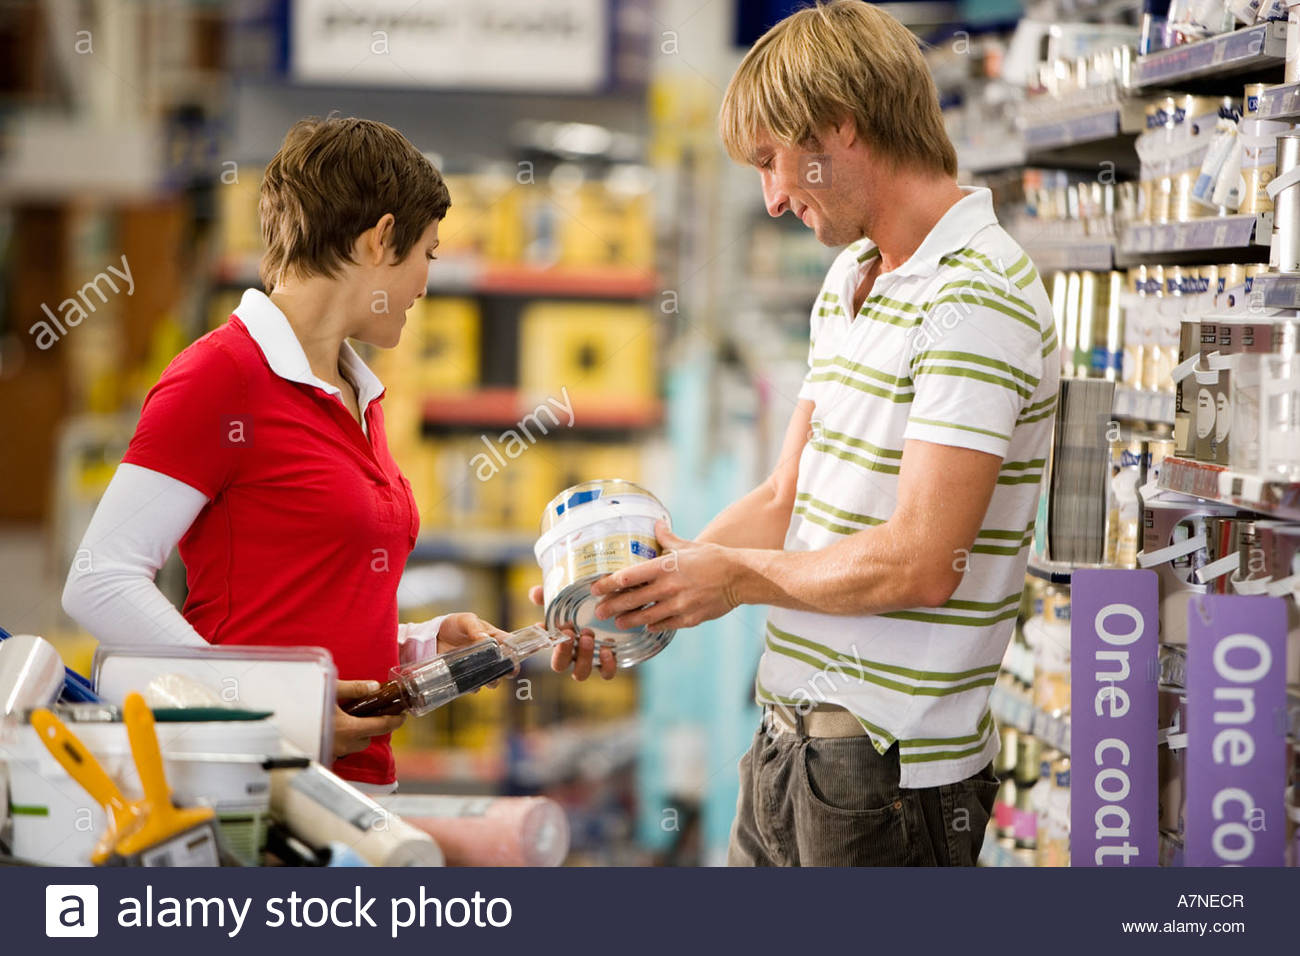 Do it yourself shop stock photos do it yourself shop stock images couple shopping in diy shop man choosing tin of paint side view stock image solutioingenieria Gallery